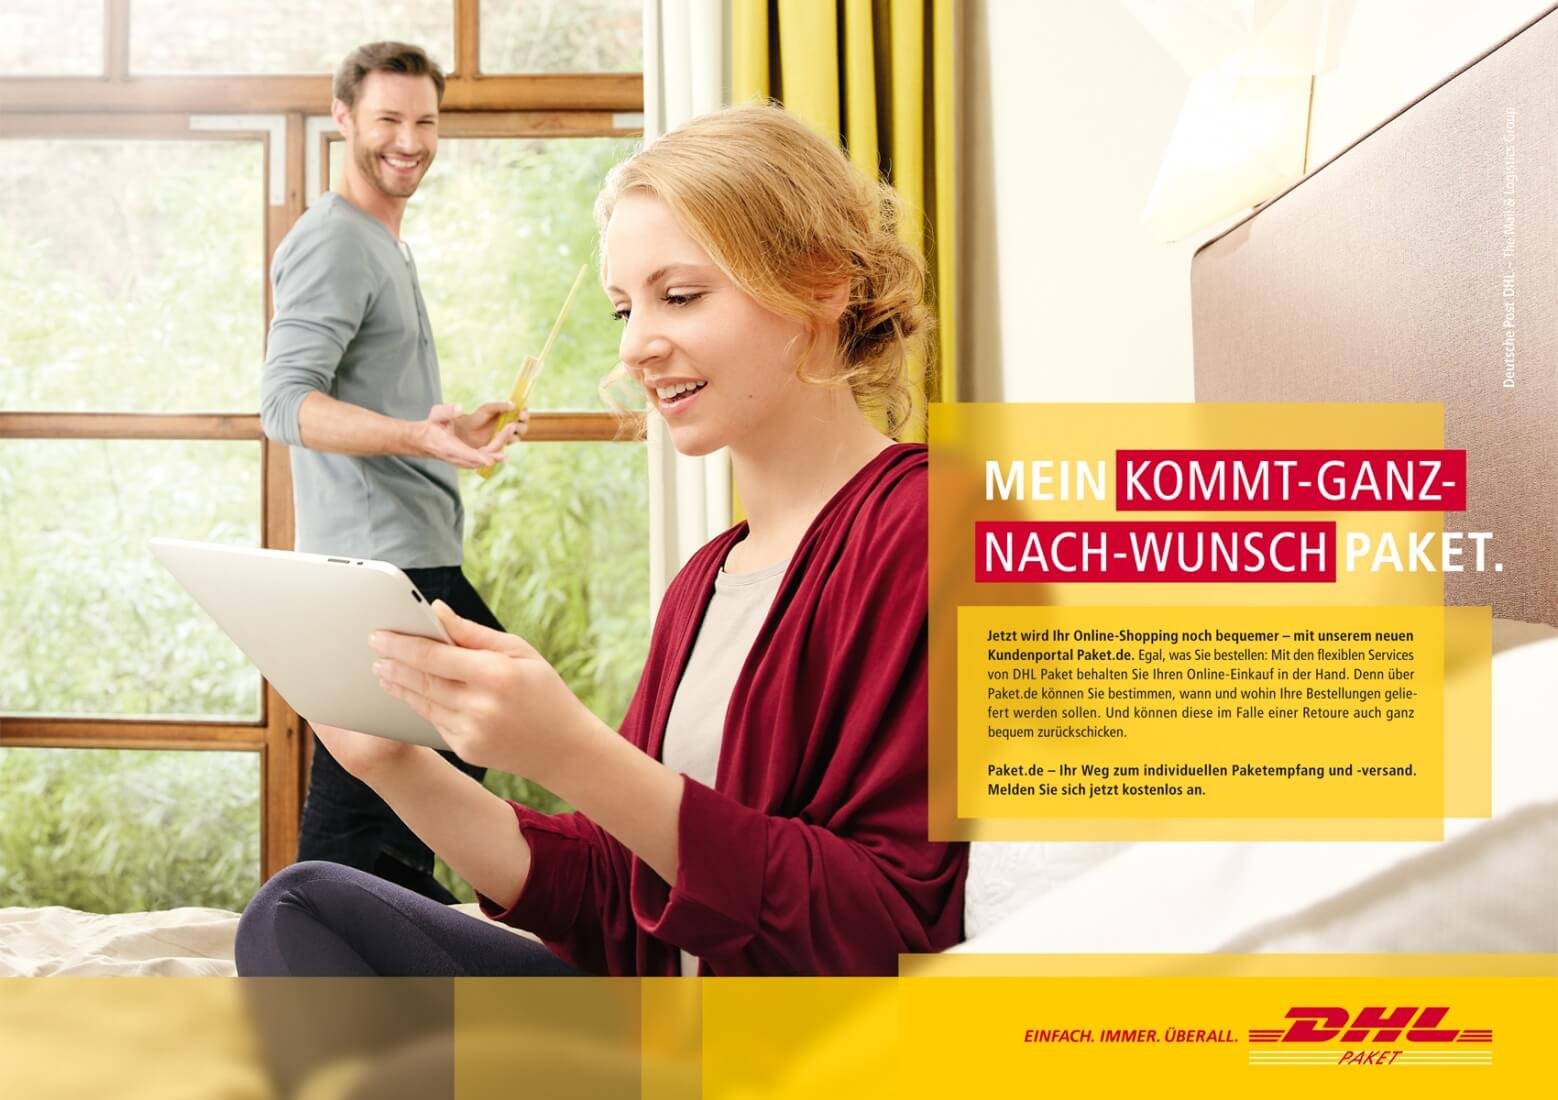 dhl mein paket 1 lunik photo production location scouting berlin. Black Bedroom Furniture Sets. Home Design Ideas